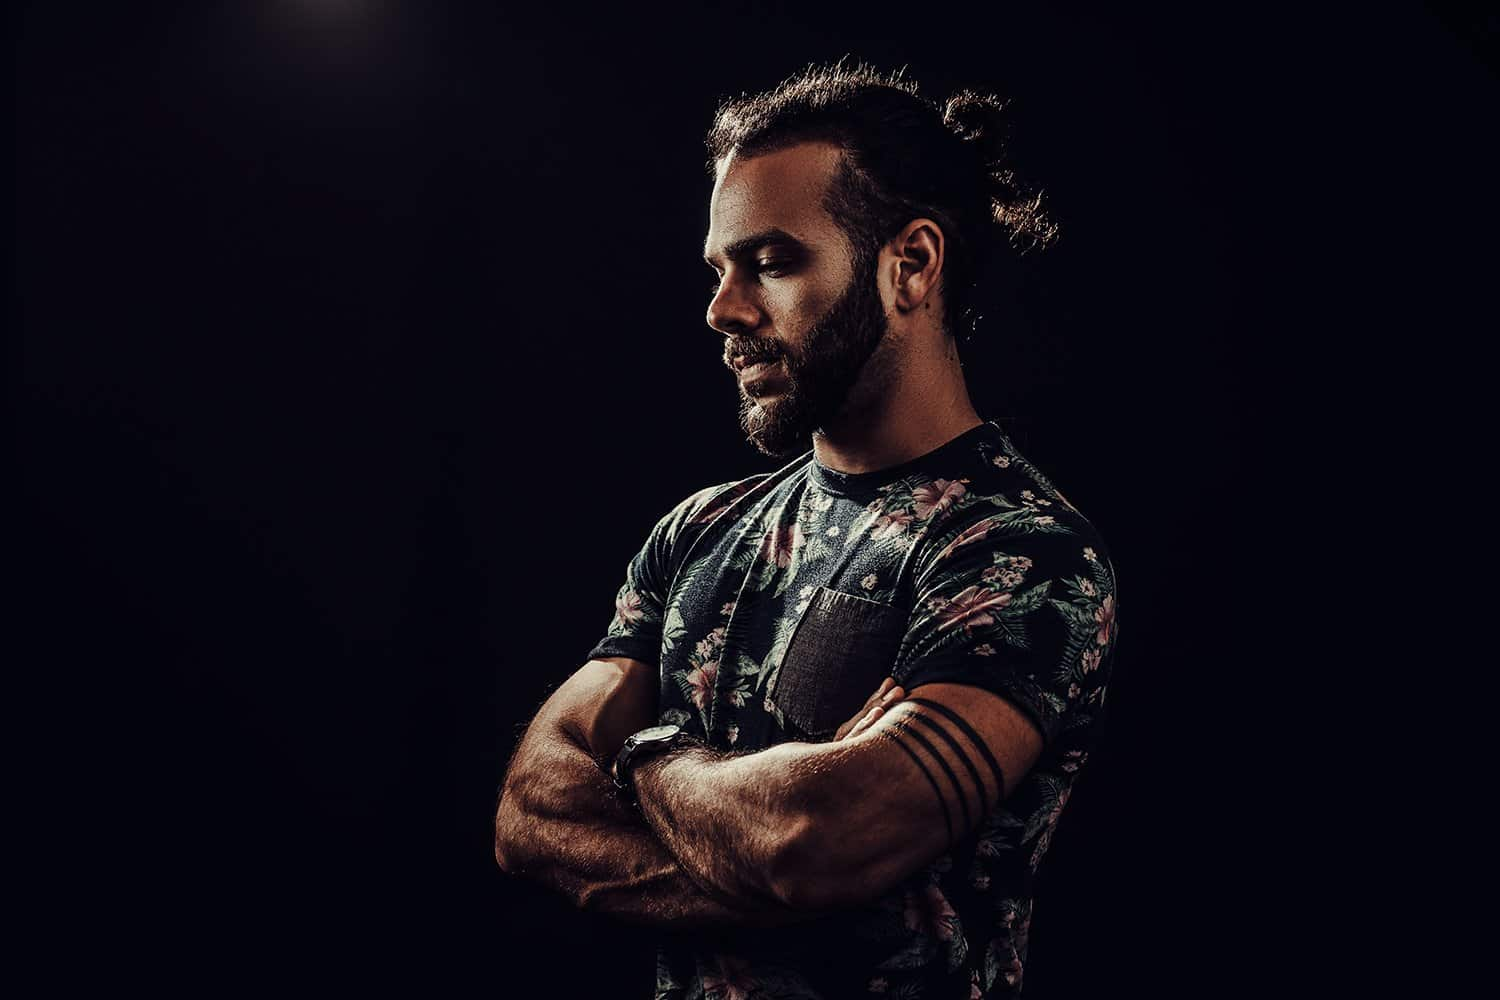 dark portrait of peter kolter wearing floral shirt and ponytail